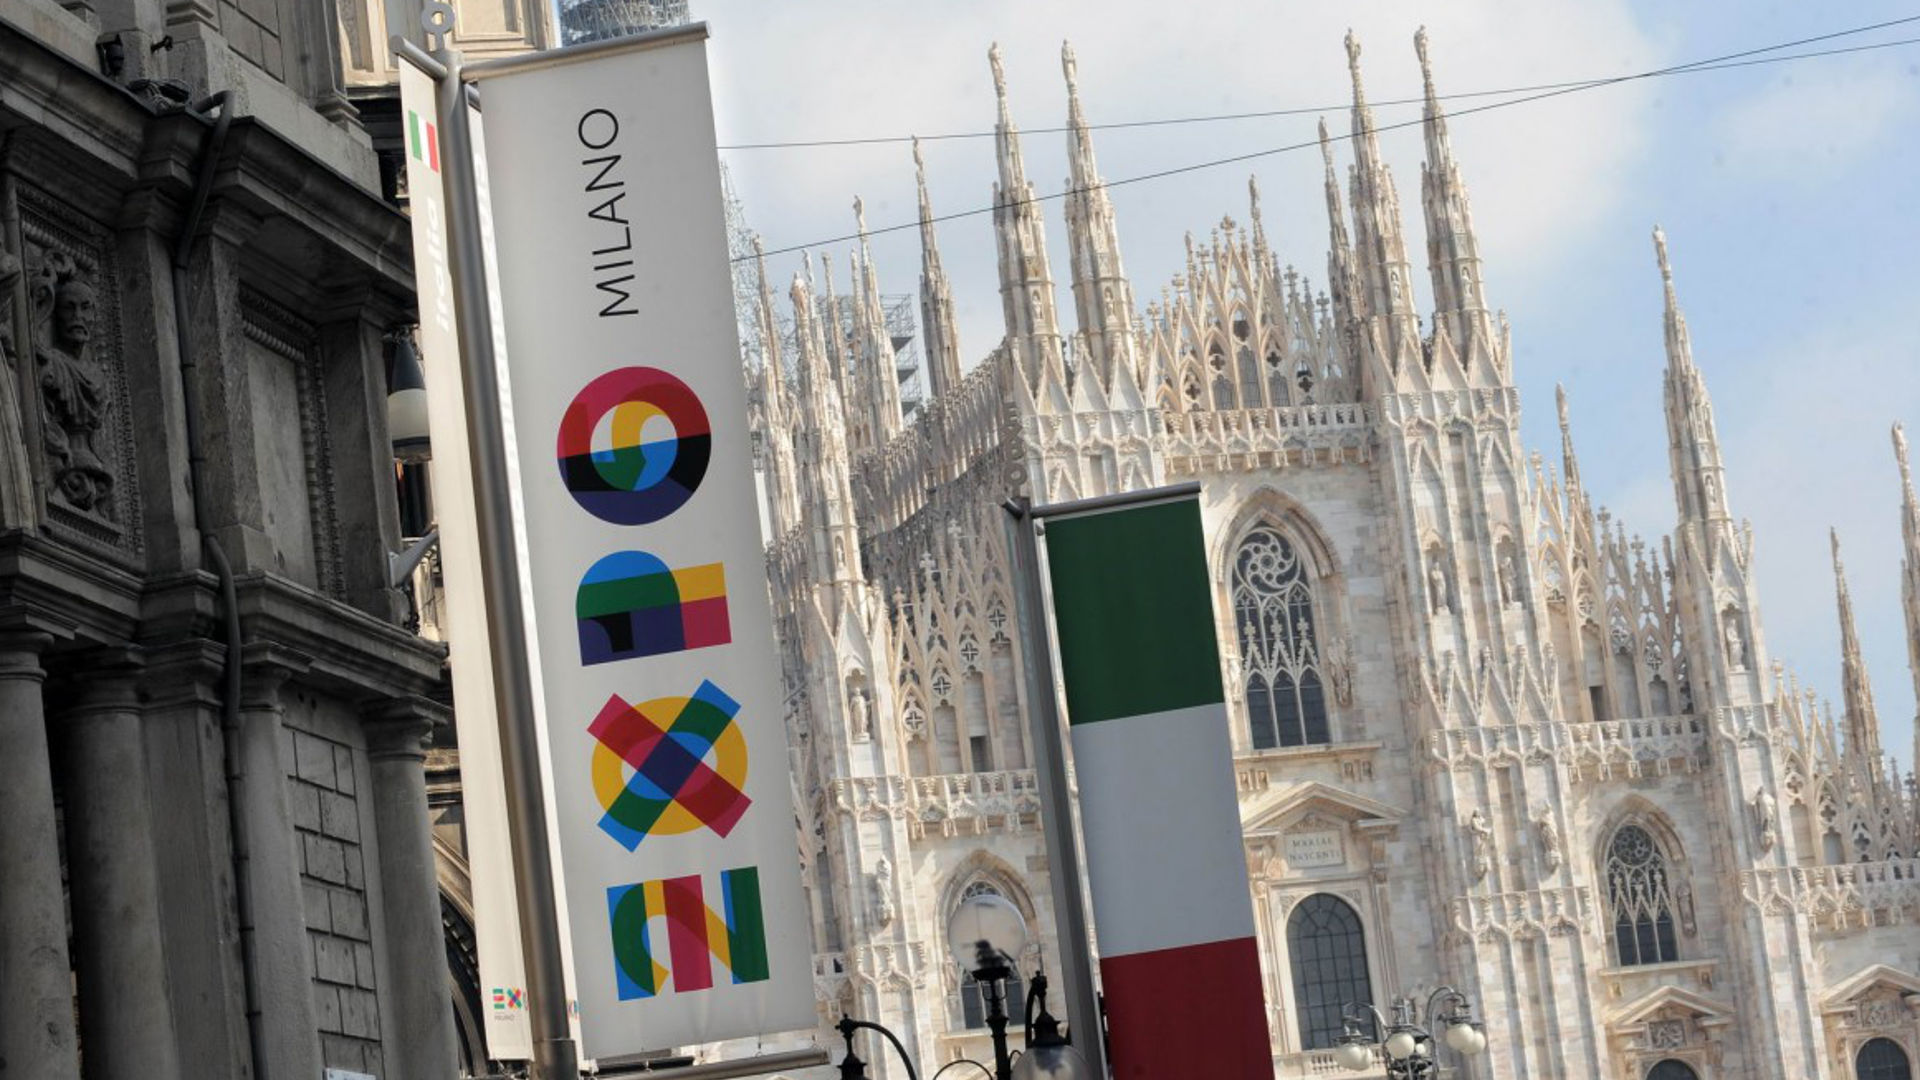 back_expo_milano_2015-1920x1080